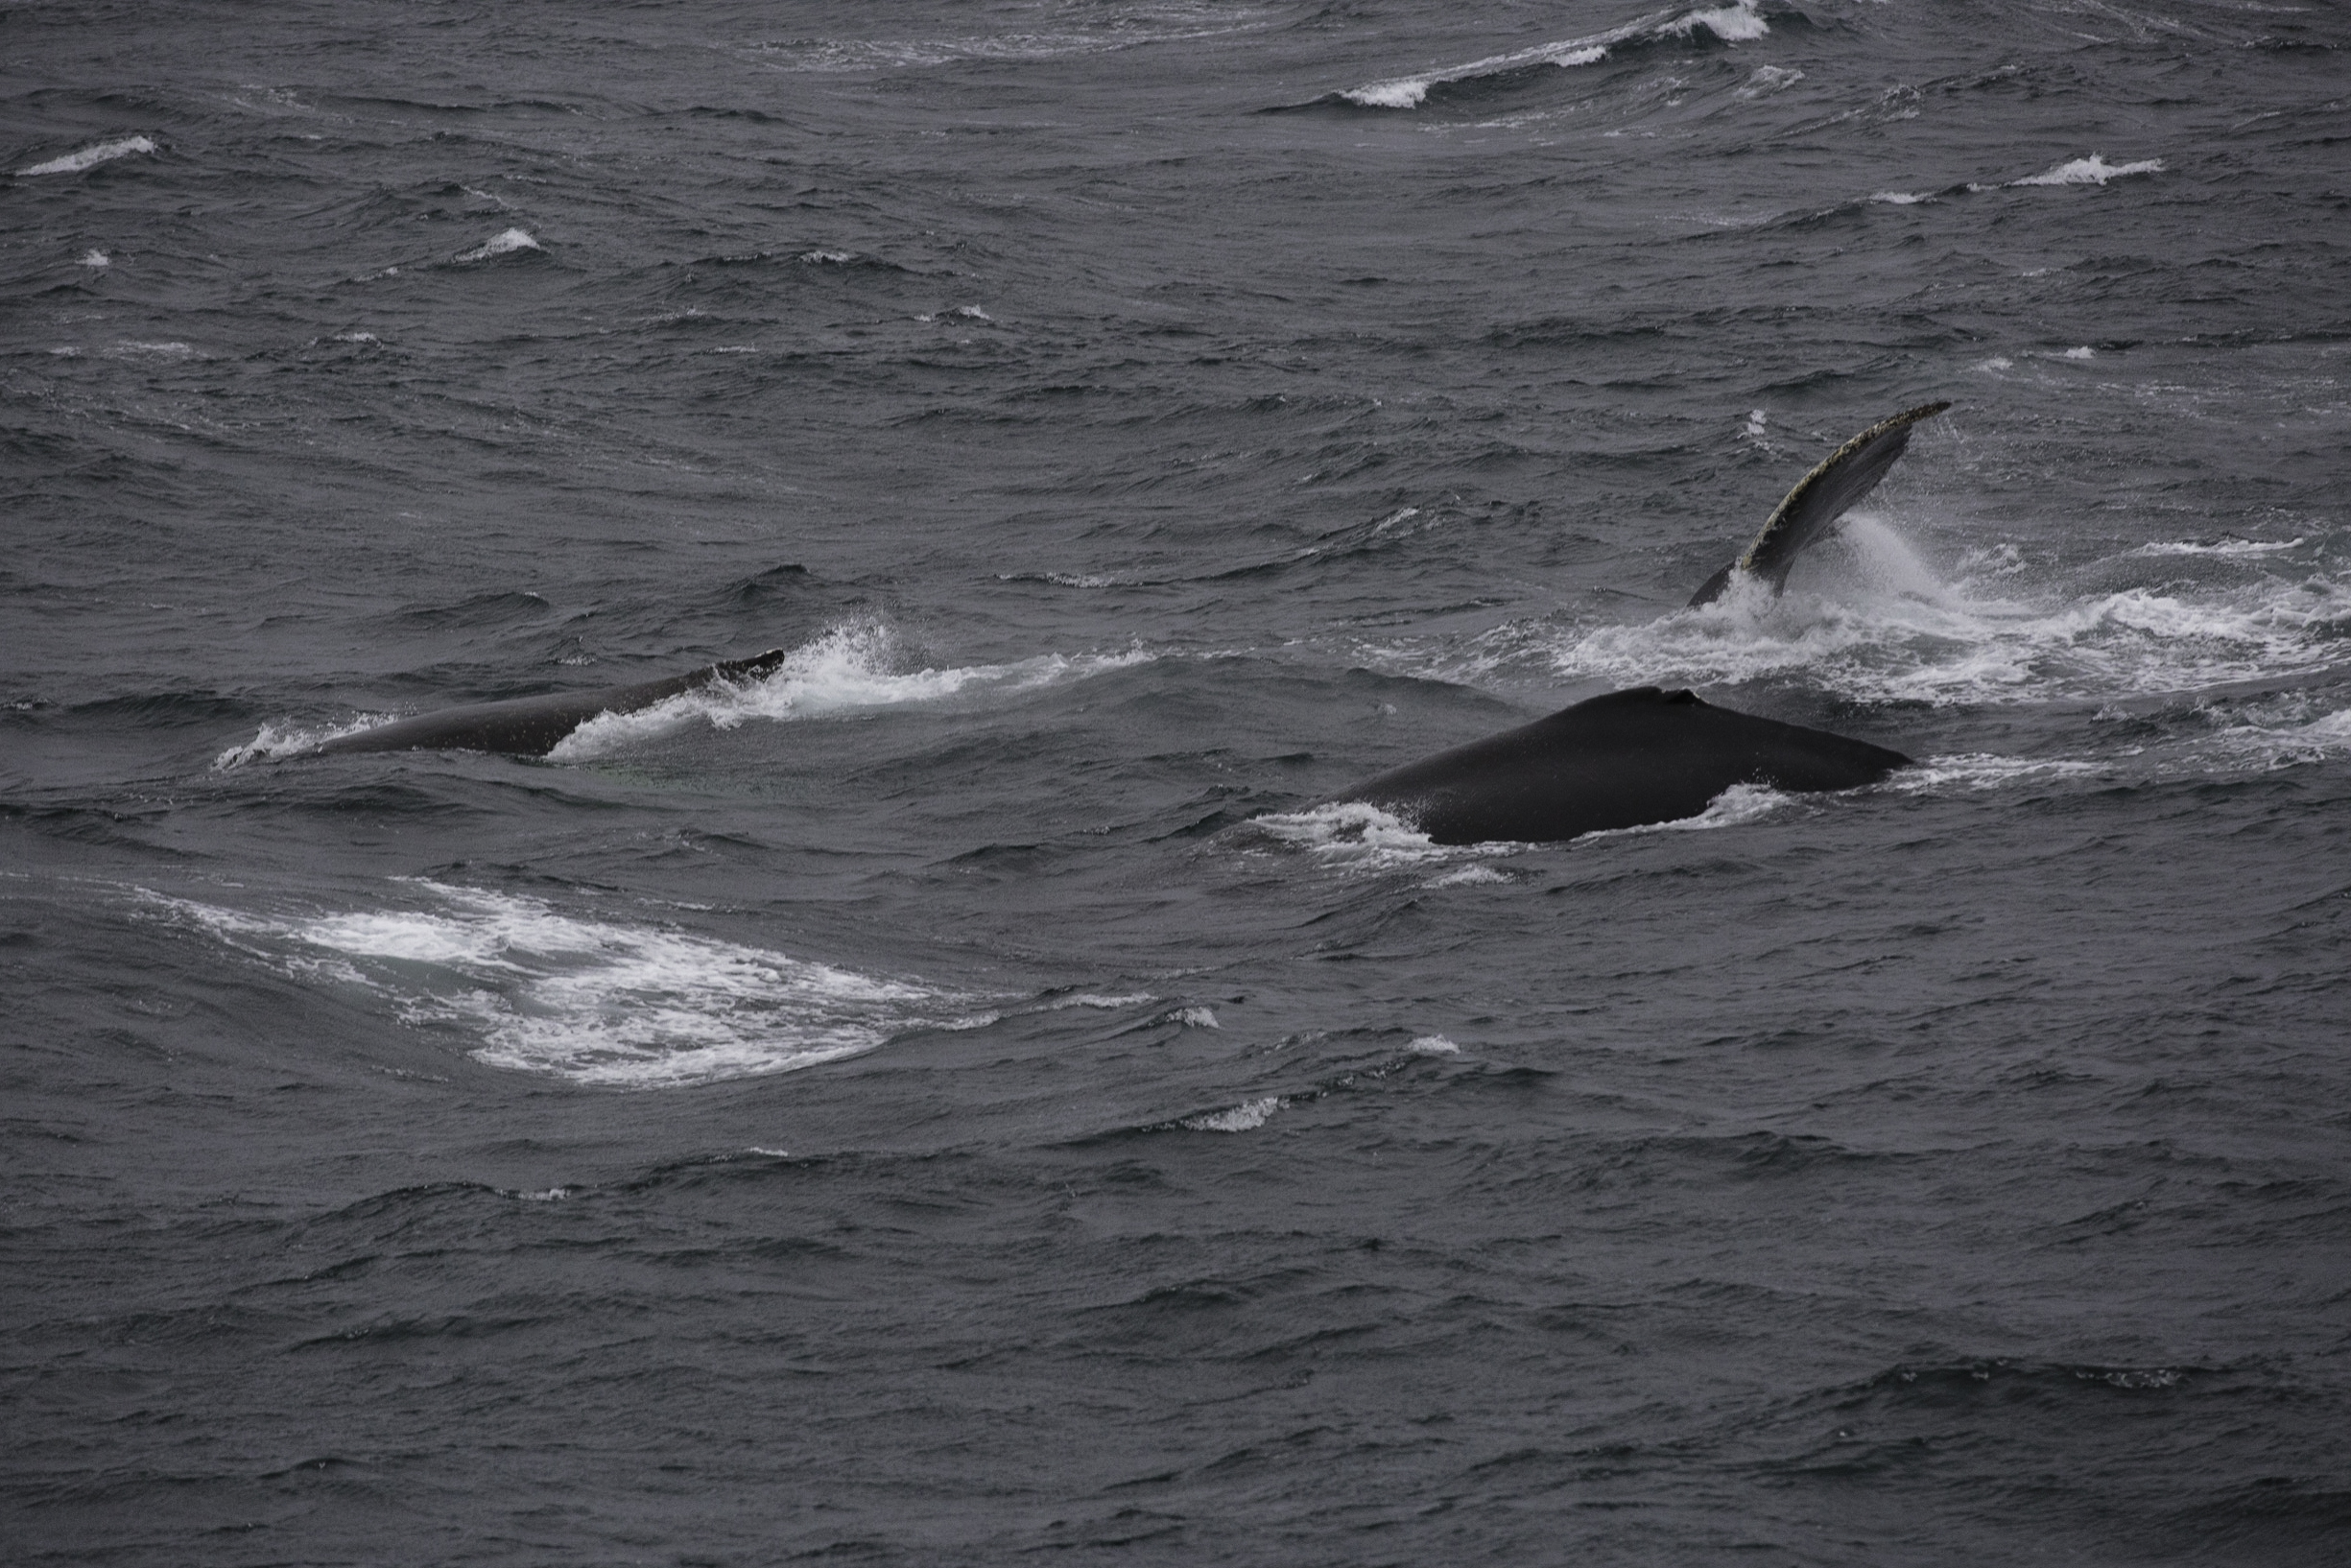 A large group of humpbacks plays in wild wind ripped seas.